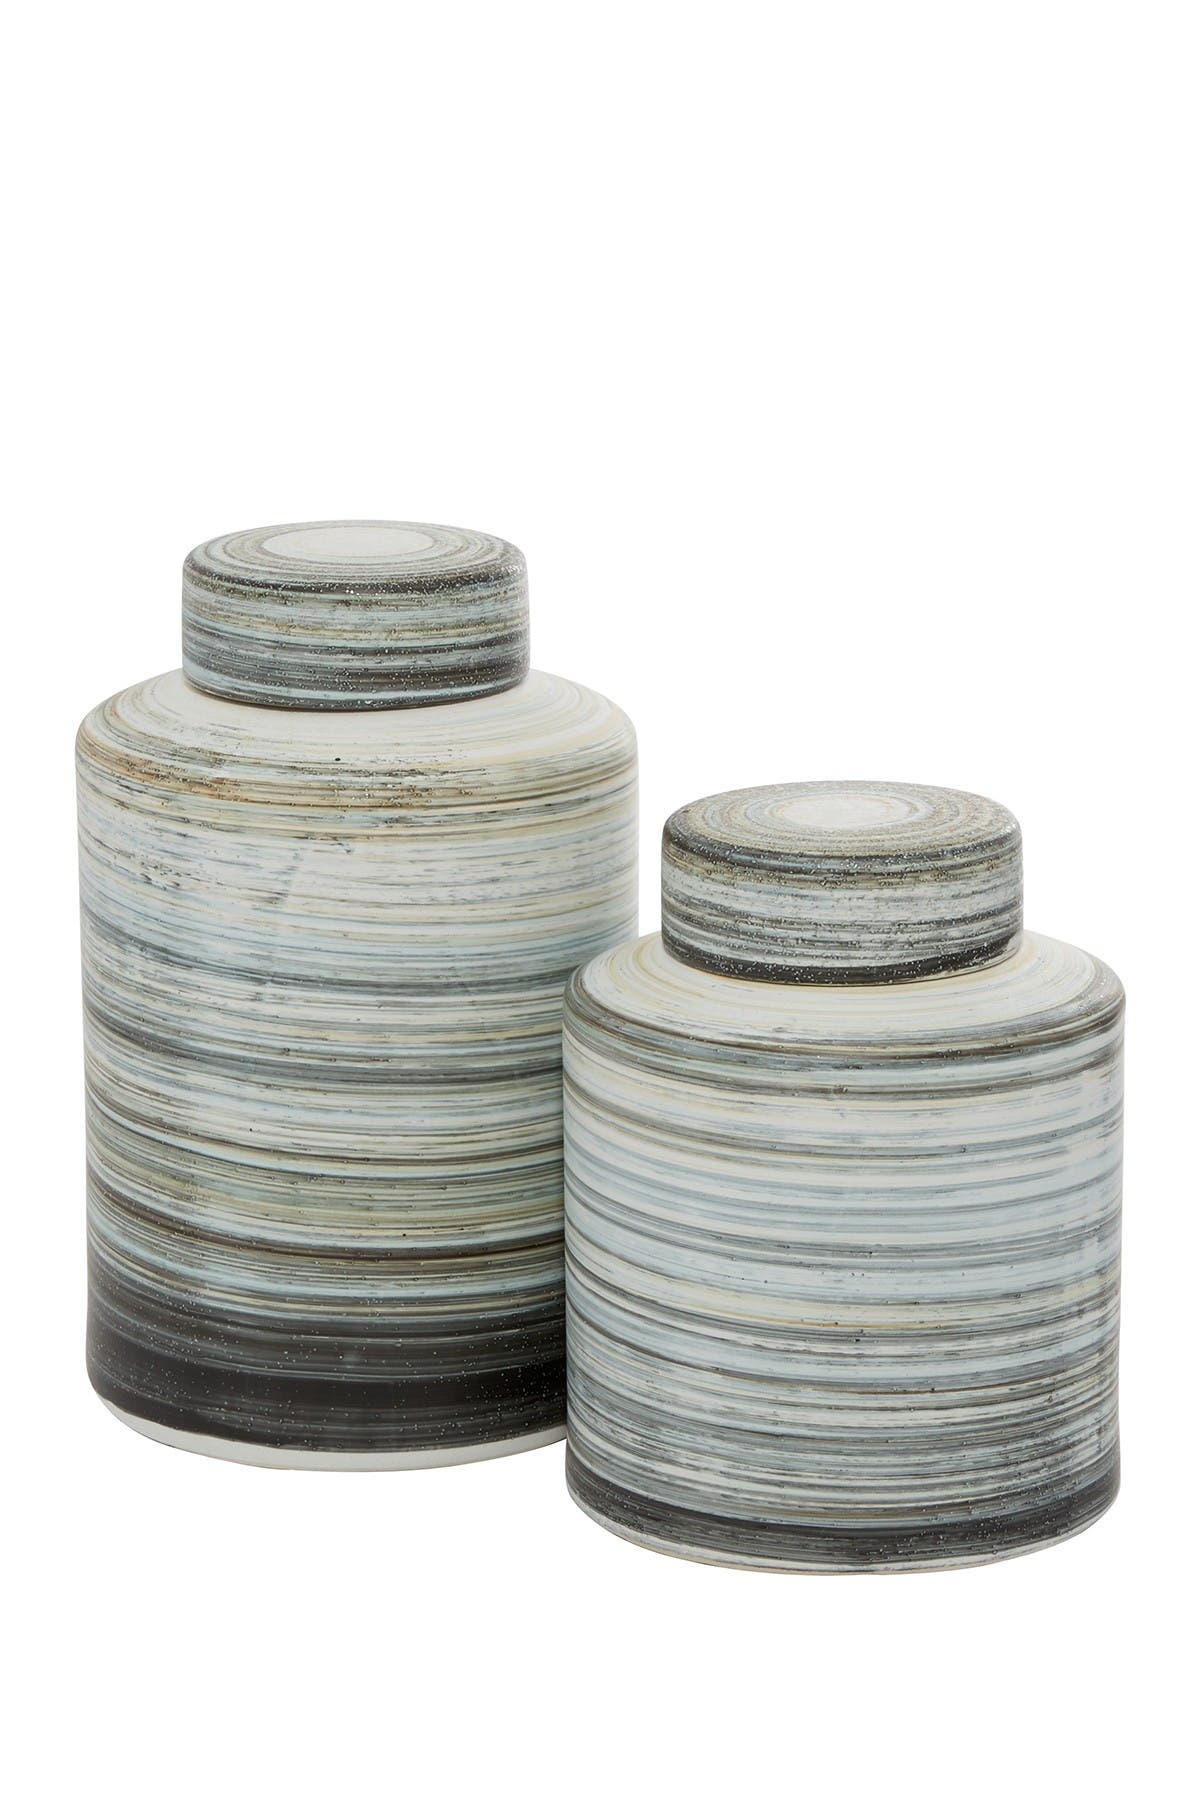 Image of Willow Row Grey Ceramic Farmhouse Decorative Jars - Set of 2